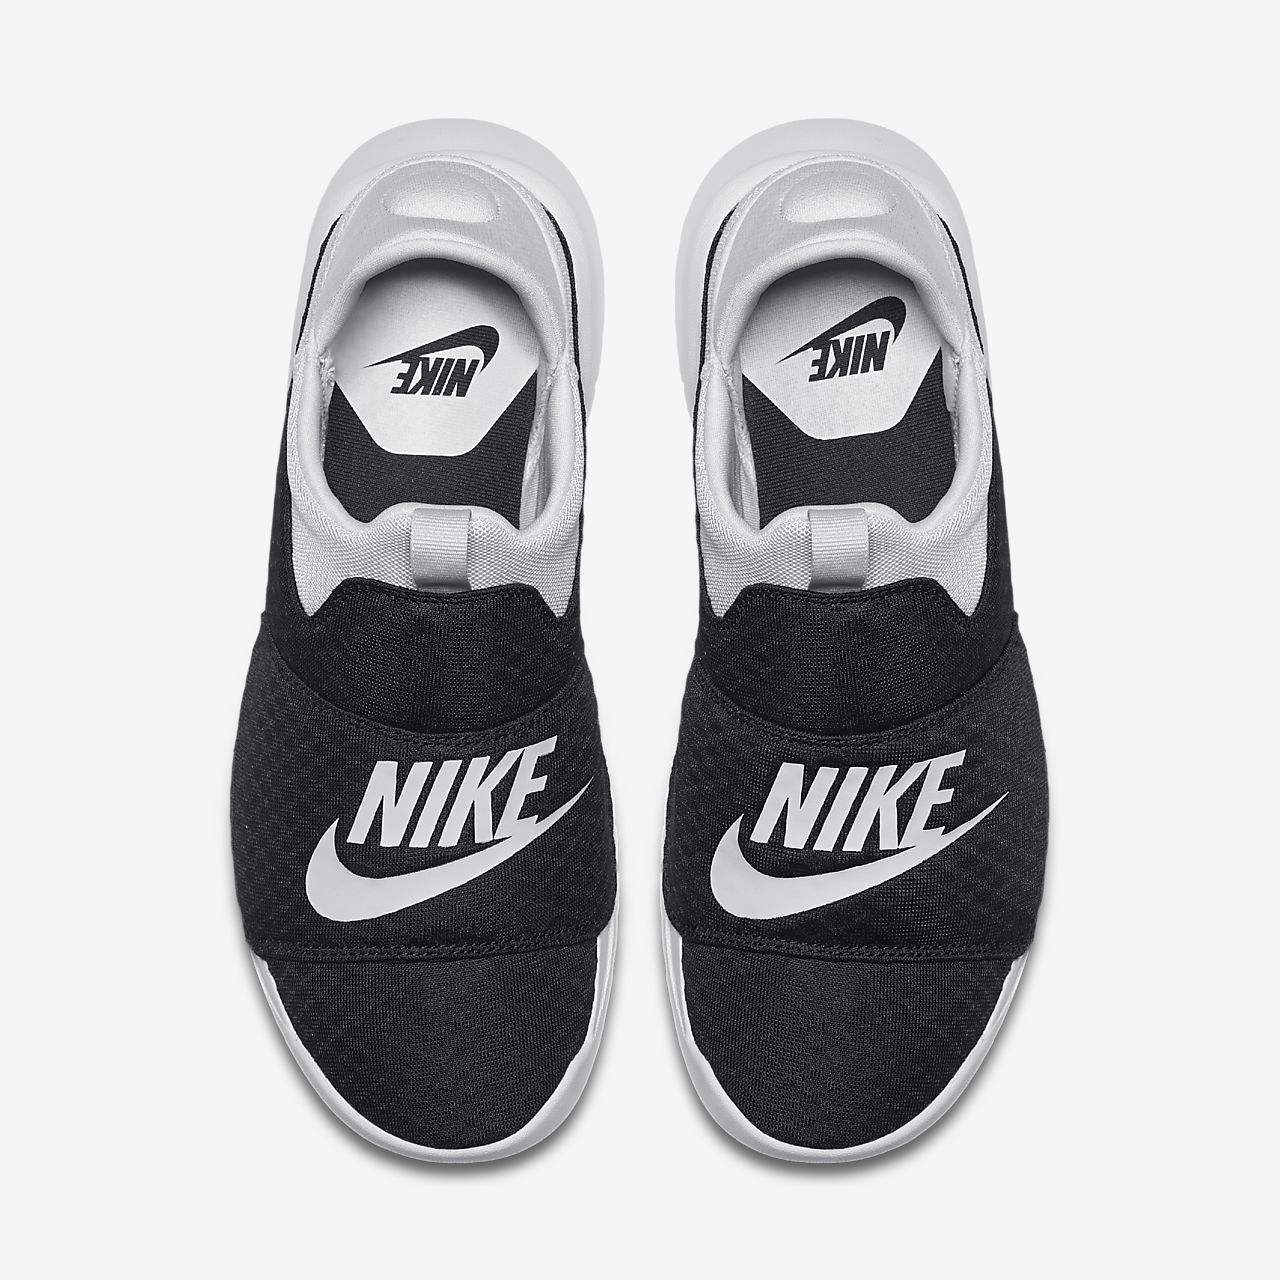 08a62286b080 ... Low Resolution Nike Benassi Slip Shoe Nike Benassi Slip Shoe ...